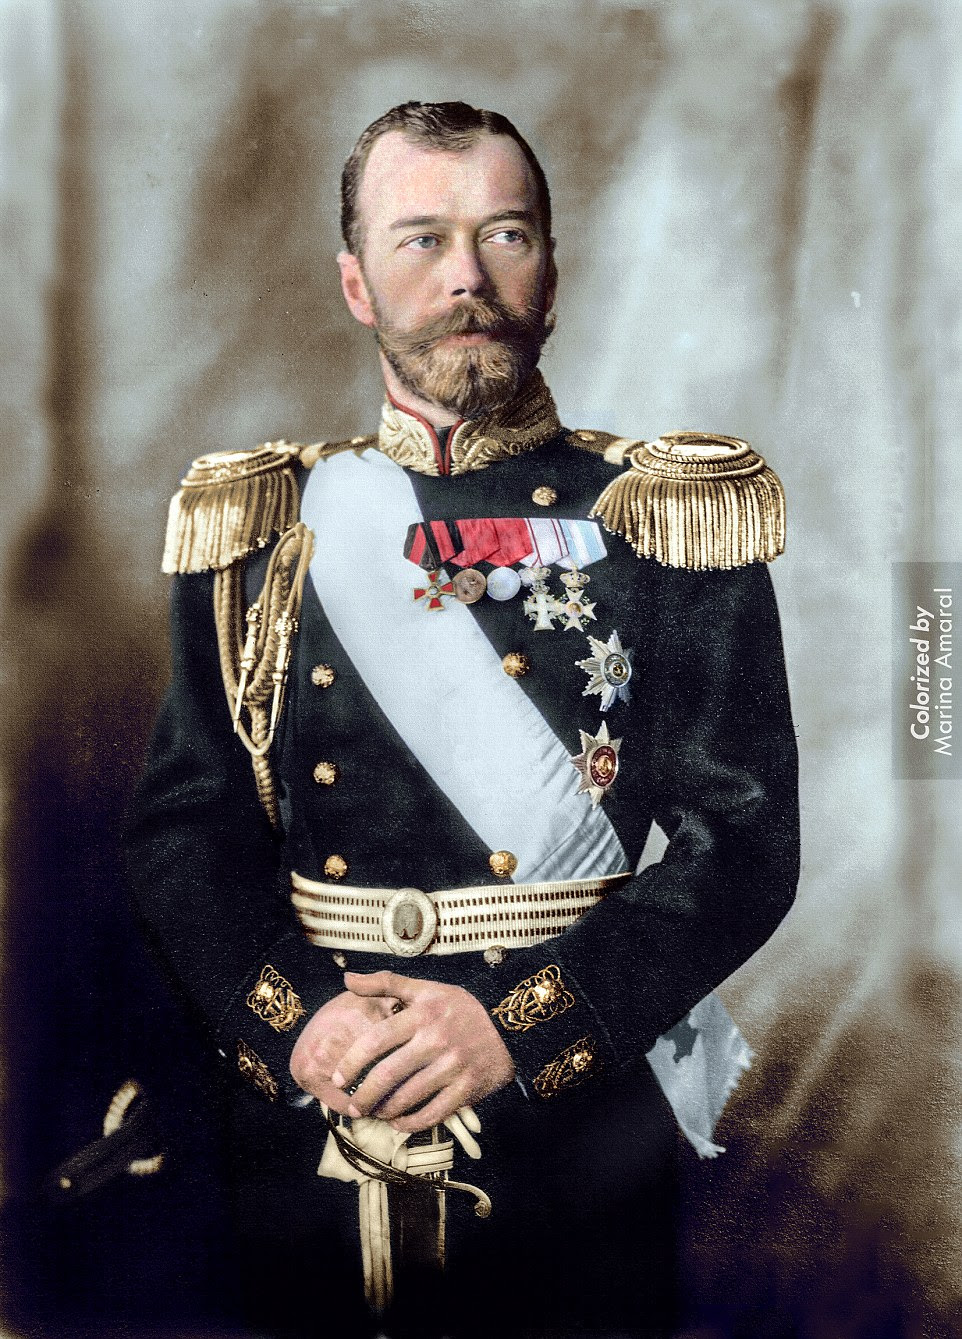 Murdered: Nicholas II of Russiawas the last Emperor of Russia, ruling from 1 November 1894 until his forced abdication on 15 March 1917. In the spring of 1918, Nicholas and his family were executed by the Bolsheviks